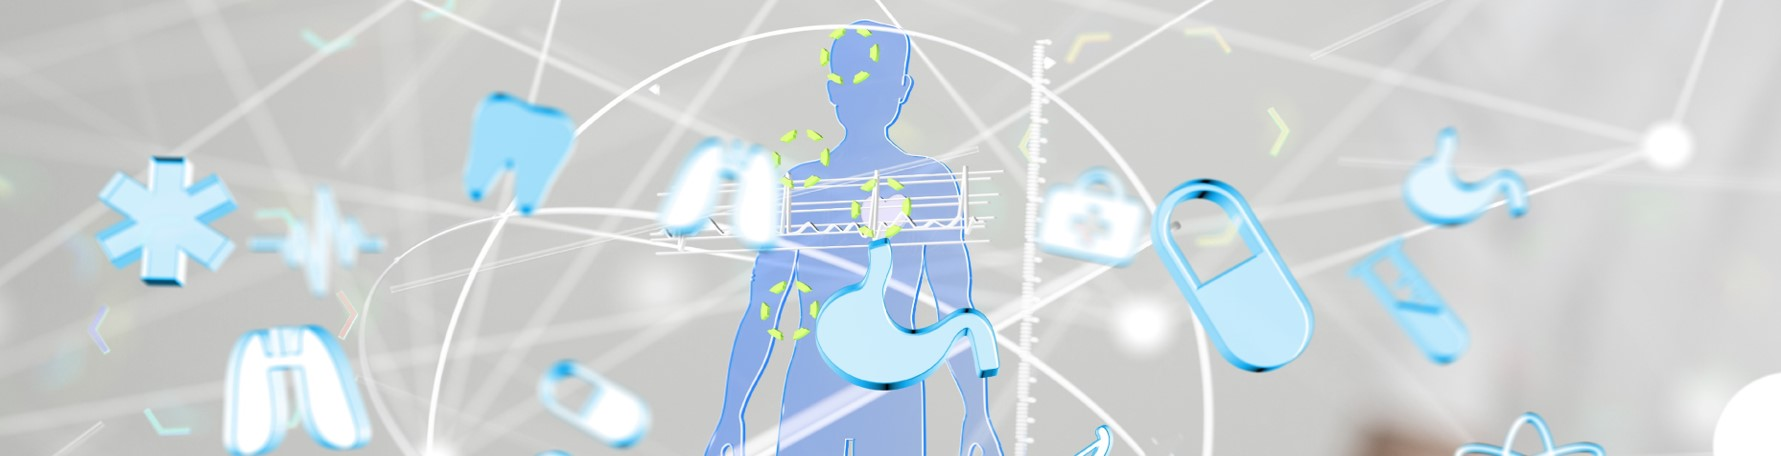 Clip art of person surrounded by lines and floating blue shapes